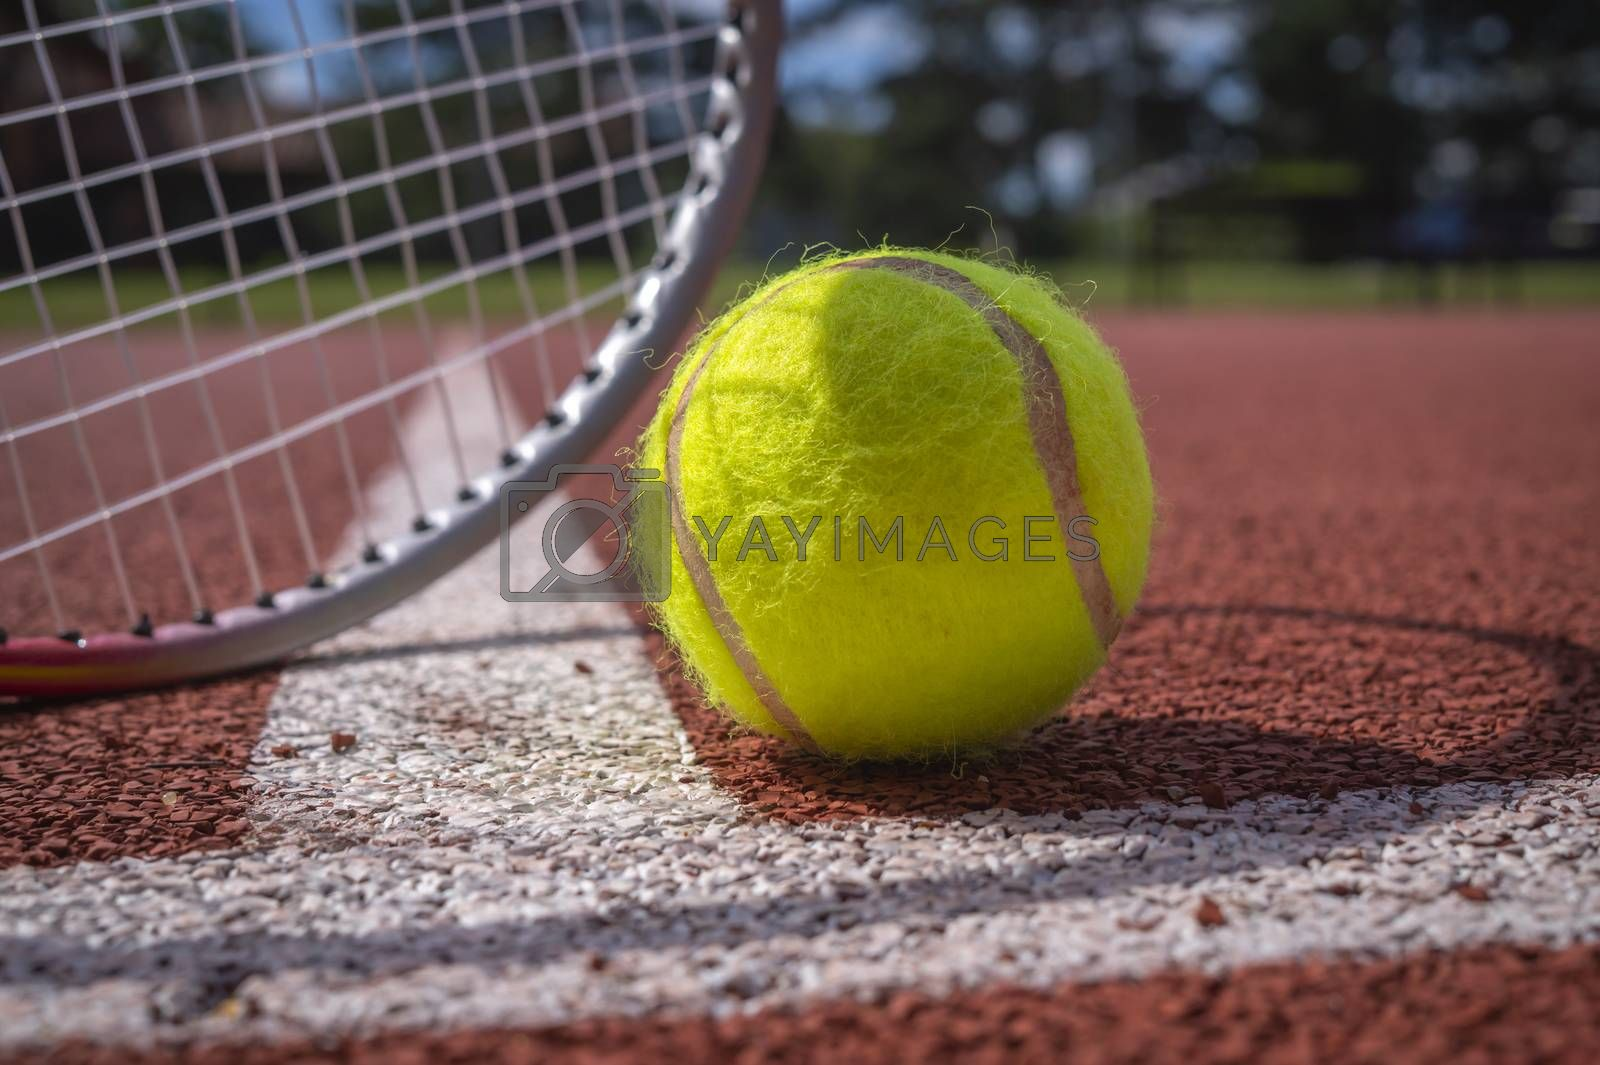 Tennis scene with white line, ball and racquets by NetPix